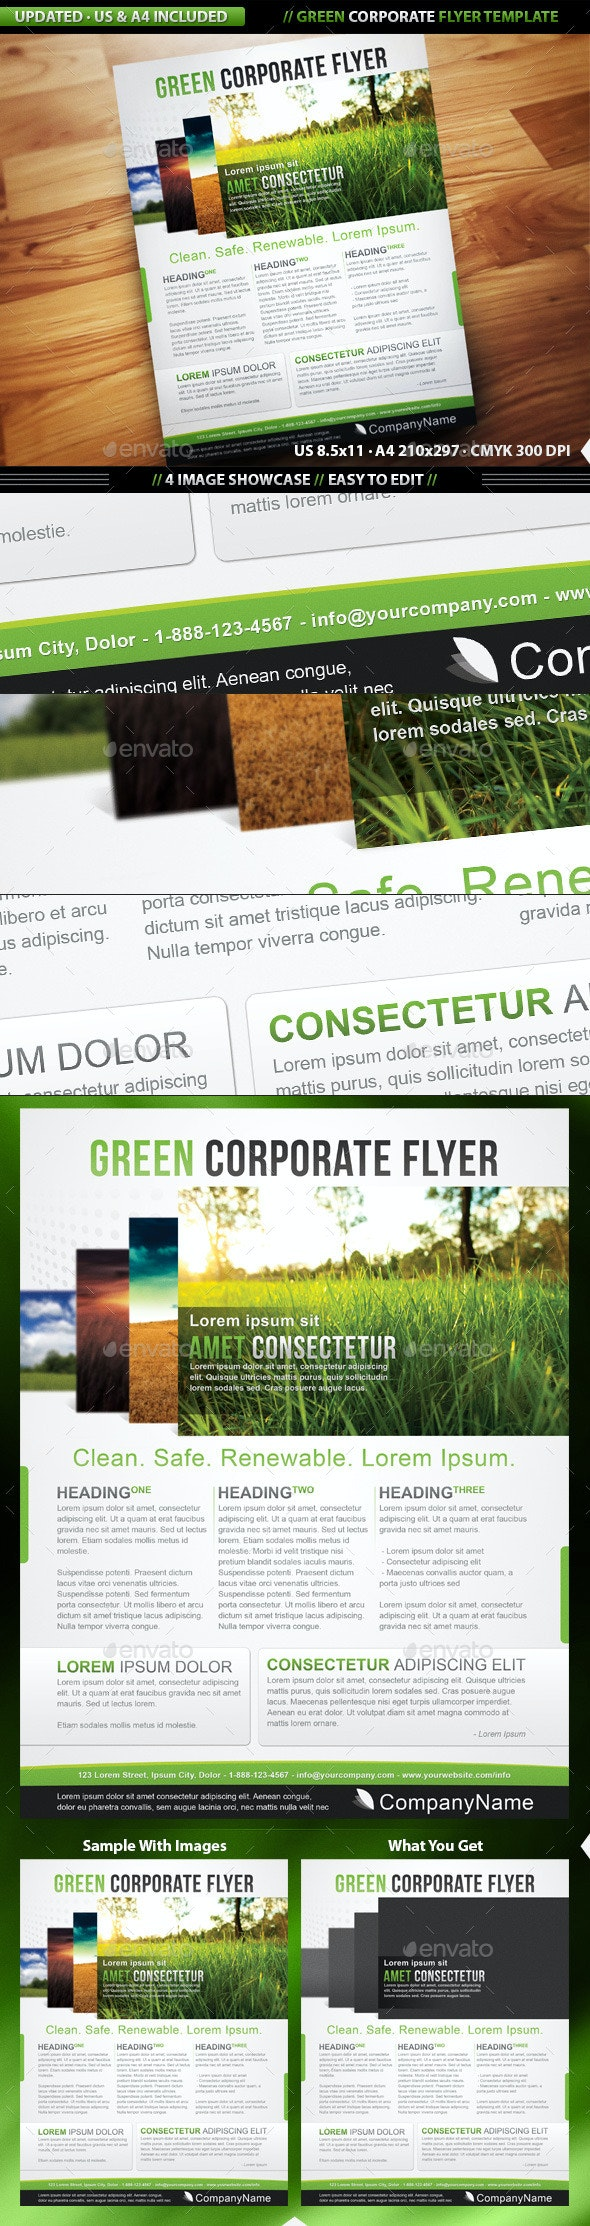 Green Corporate Flyer Template - Corporate Flyers